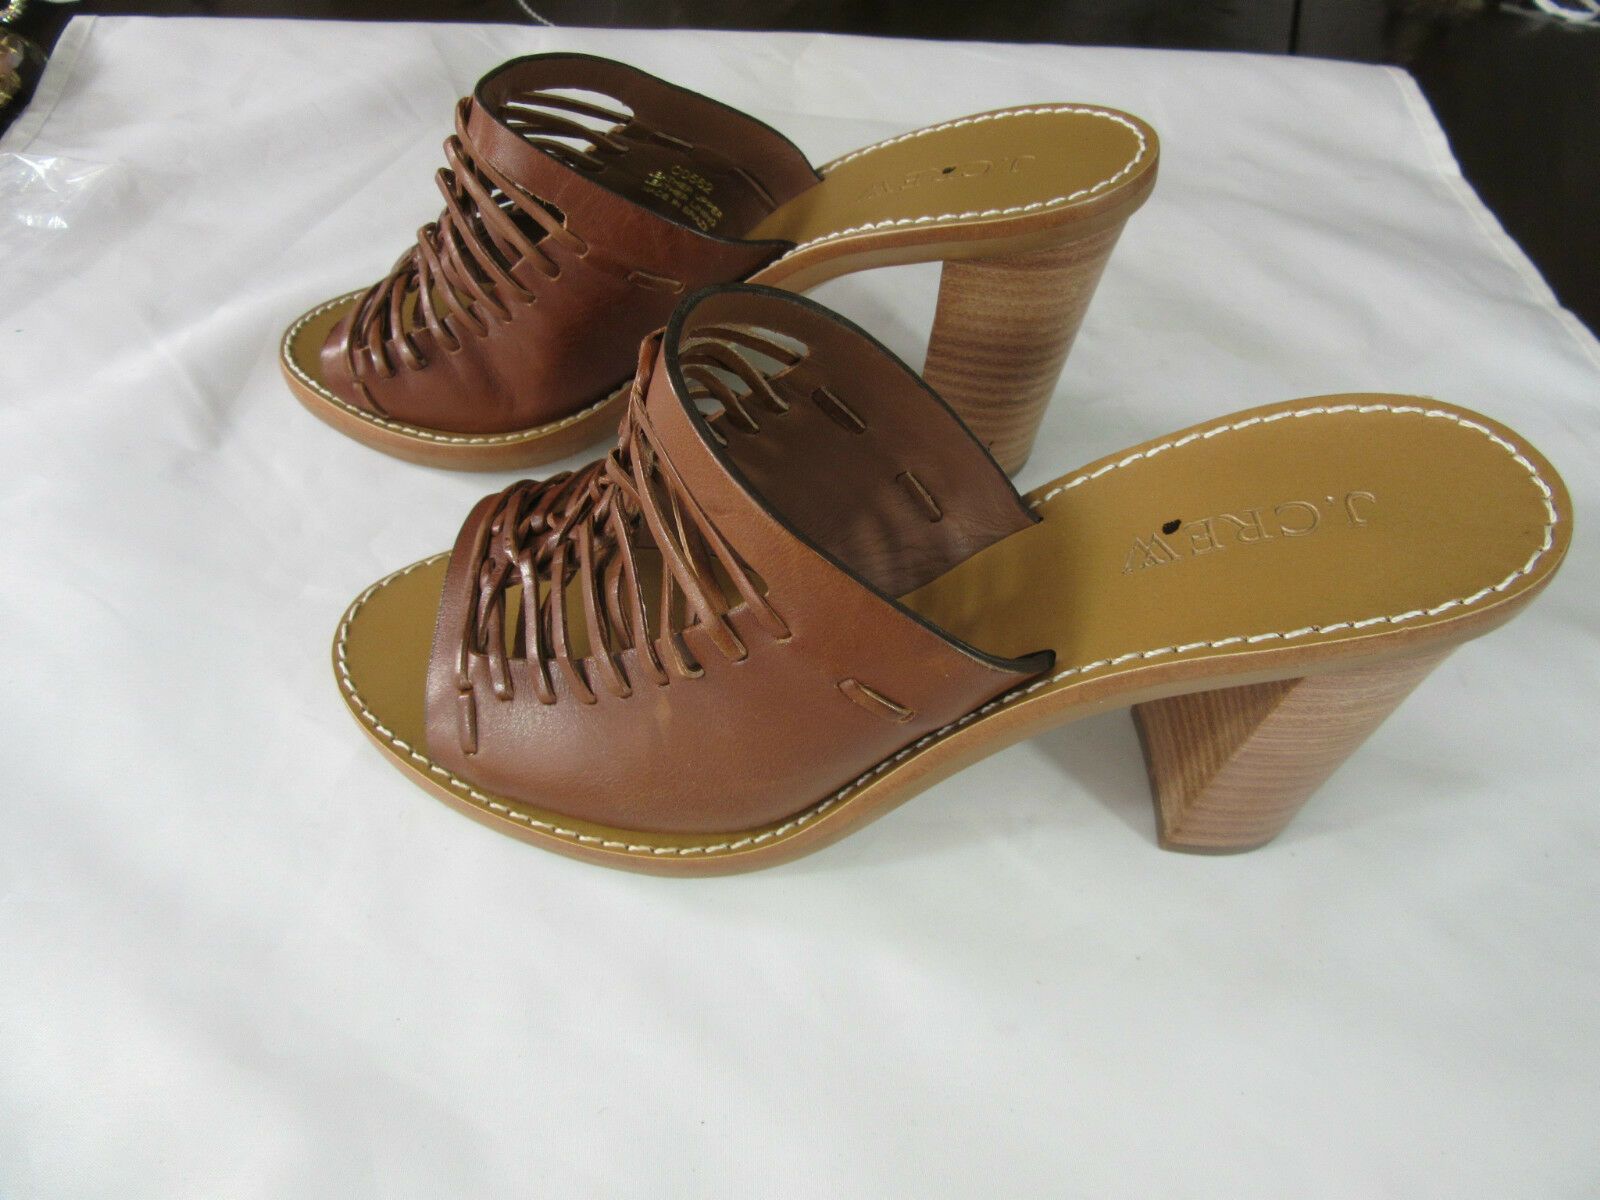 J Crew Huerache Leather Mules Sandals Heels Item  C0562 NWOB Size 5.5 in Brown